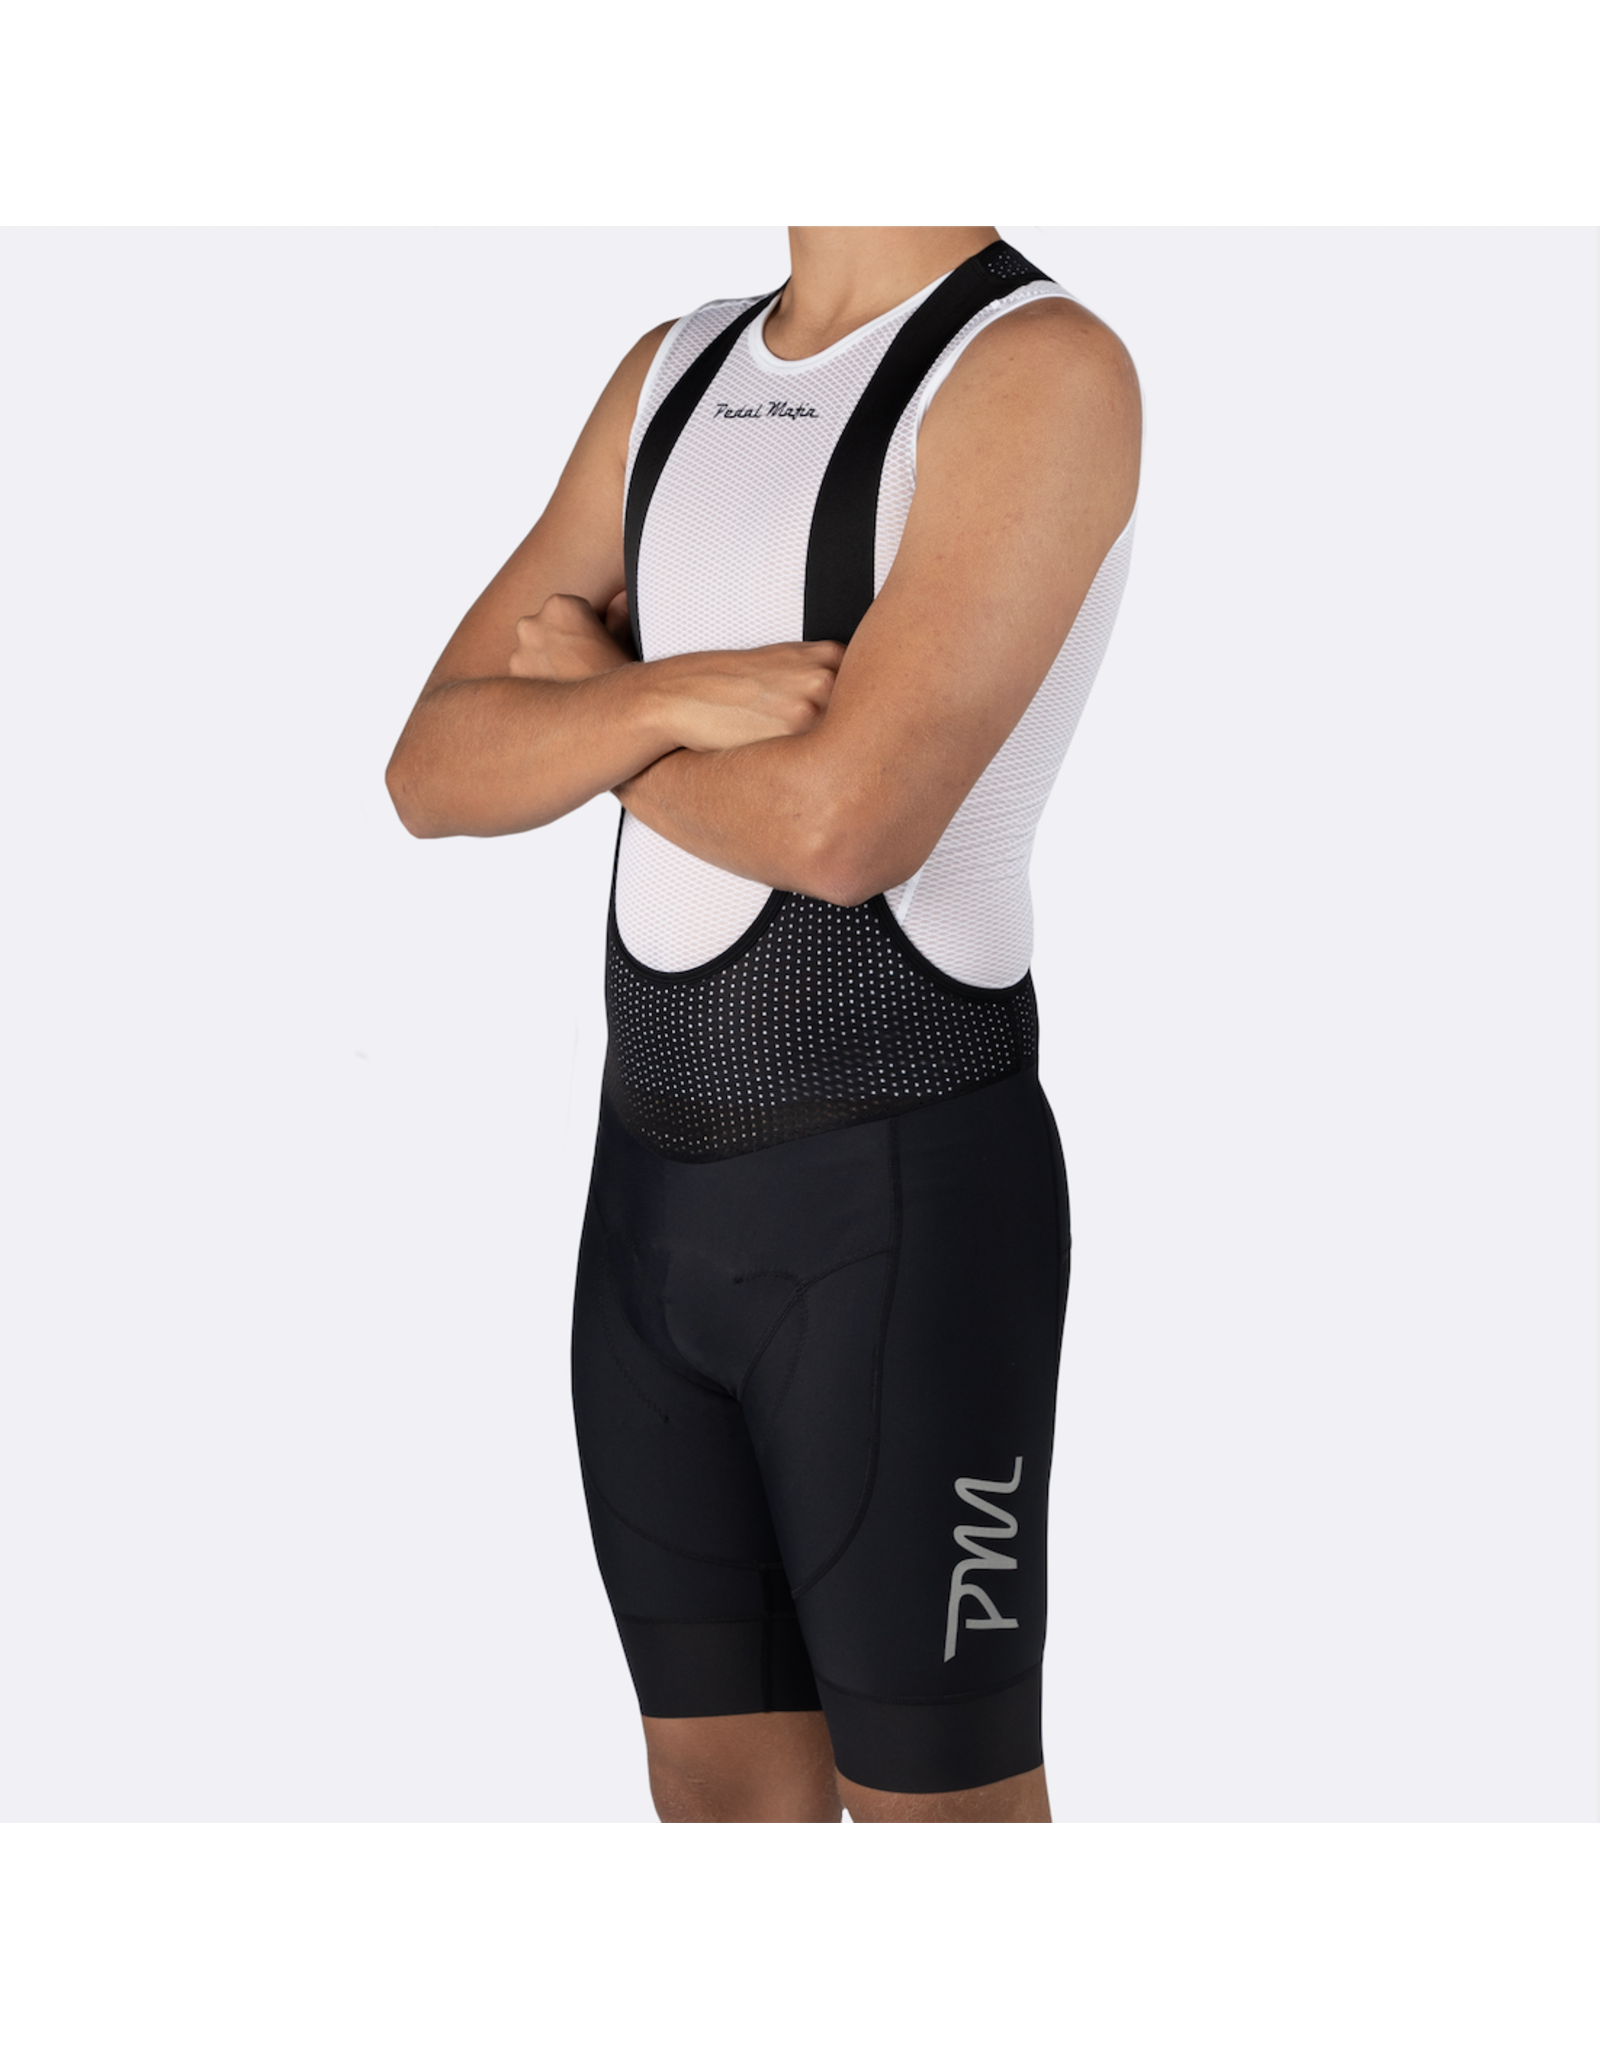 Pedal Mafia Mens Pro Bib - Elevation Black